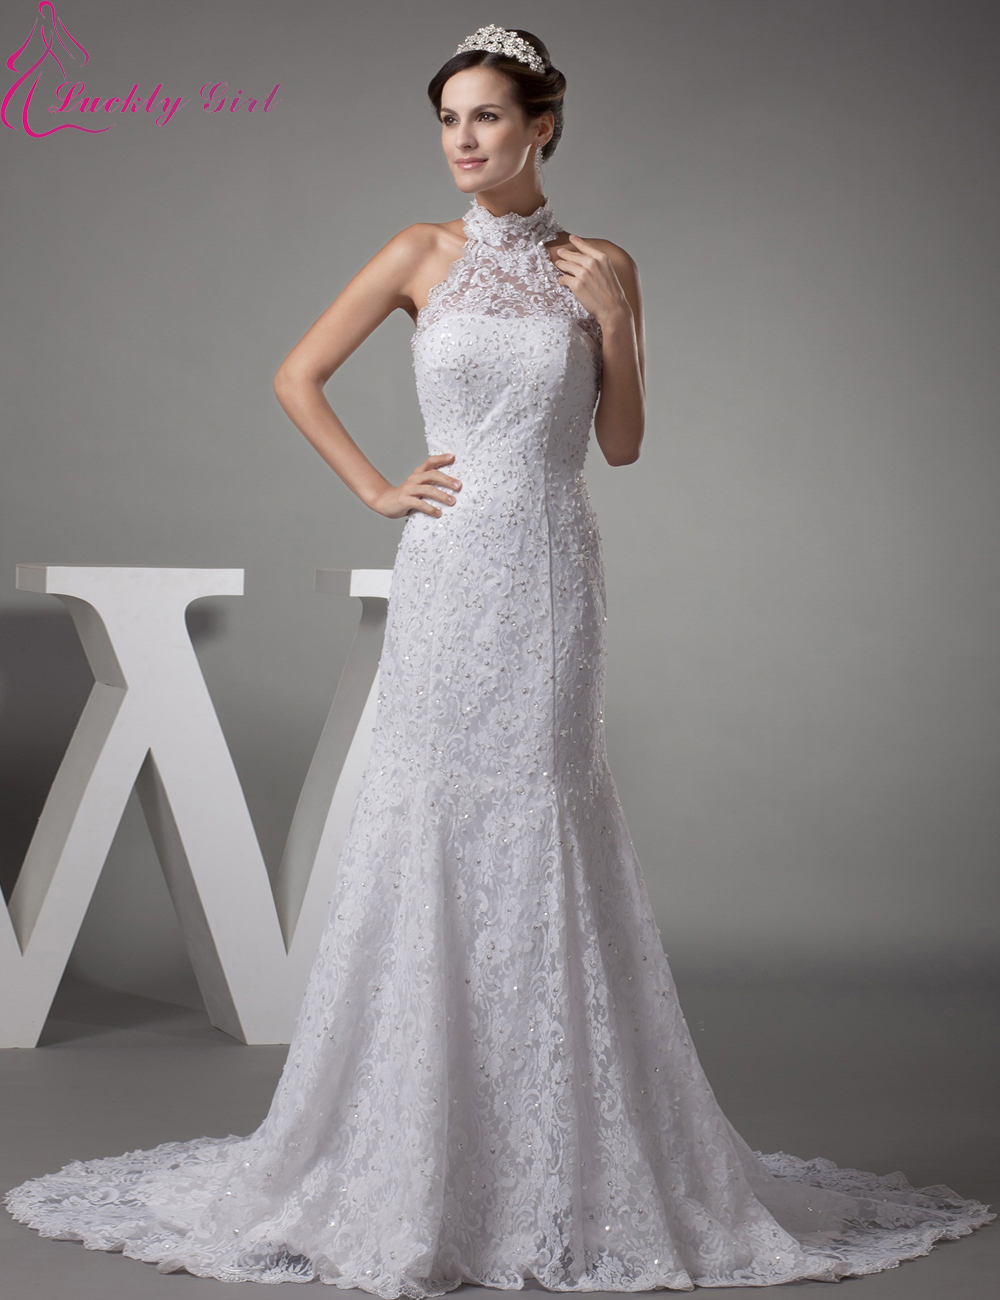 2015 new vintage wedding dress high neck sweetheart